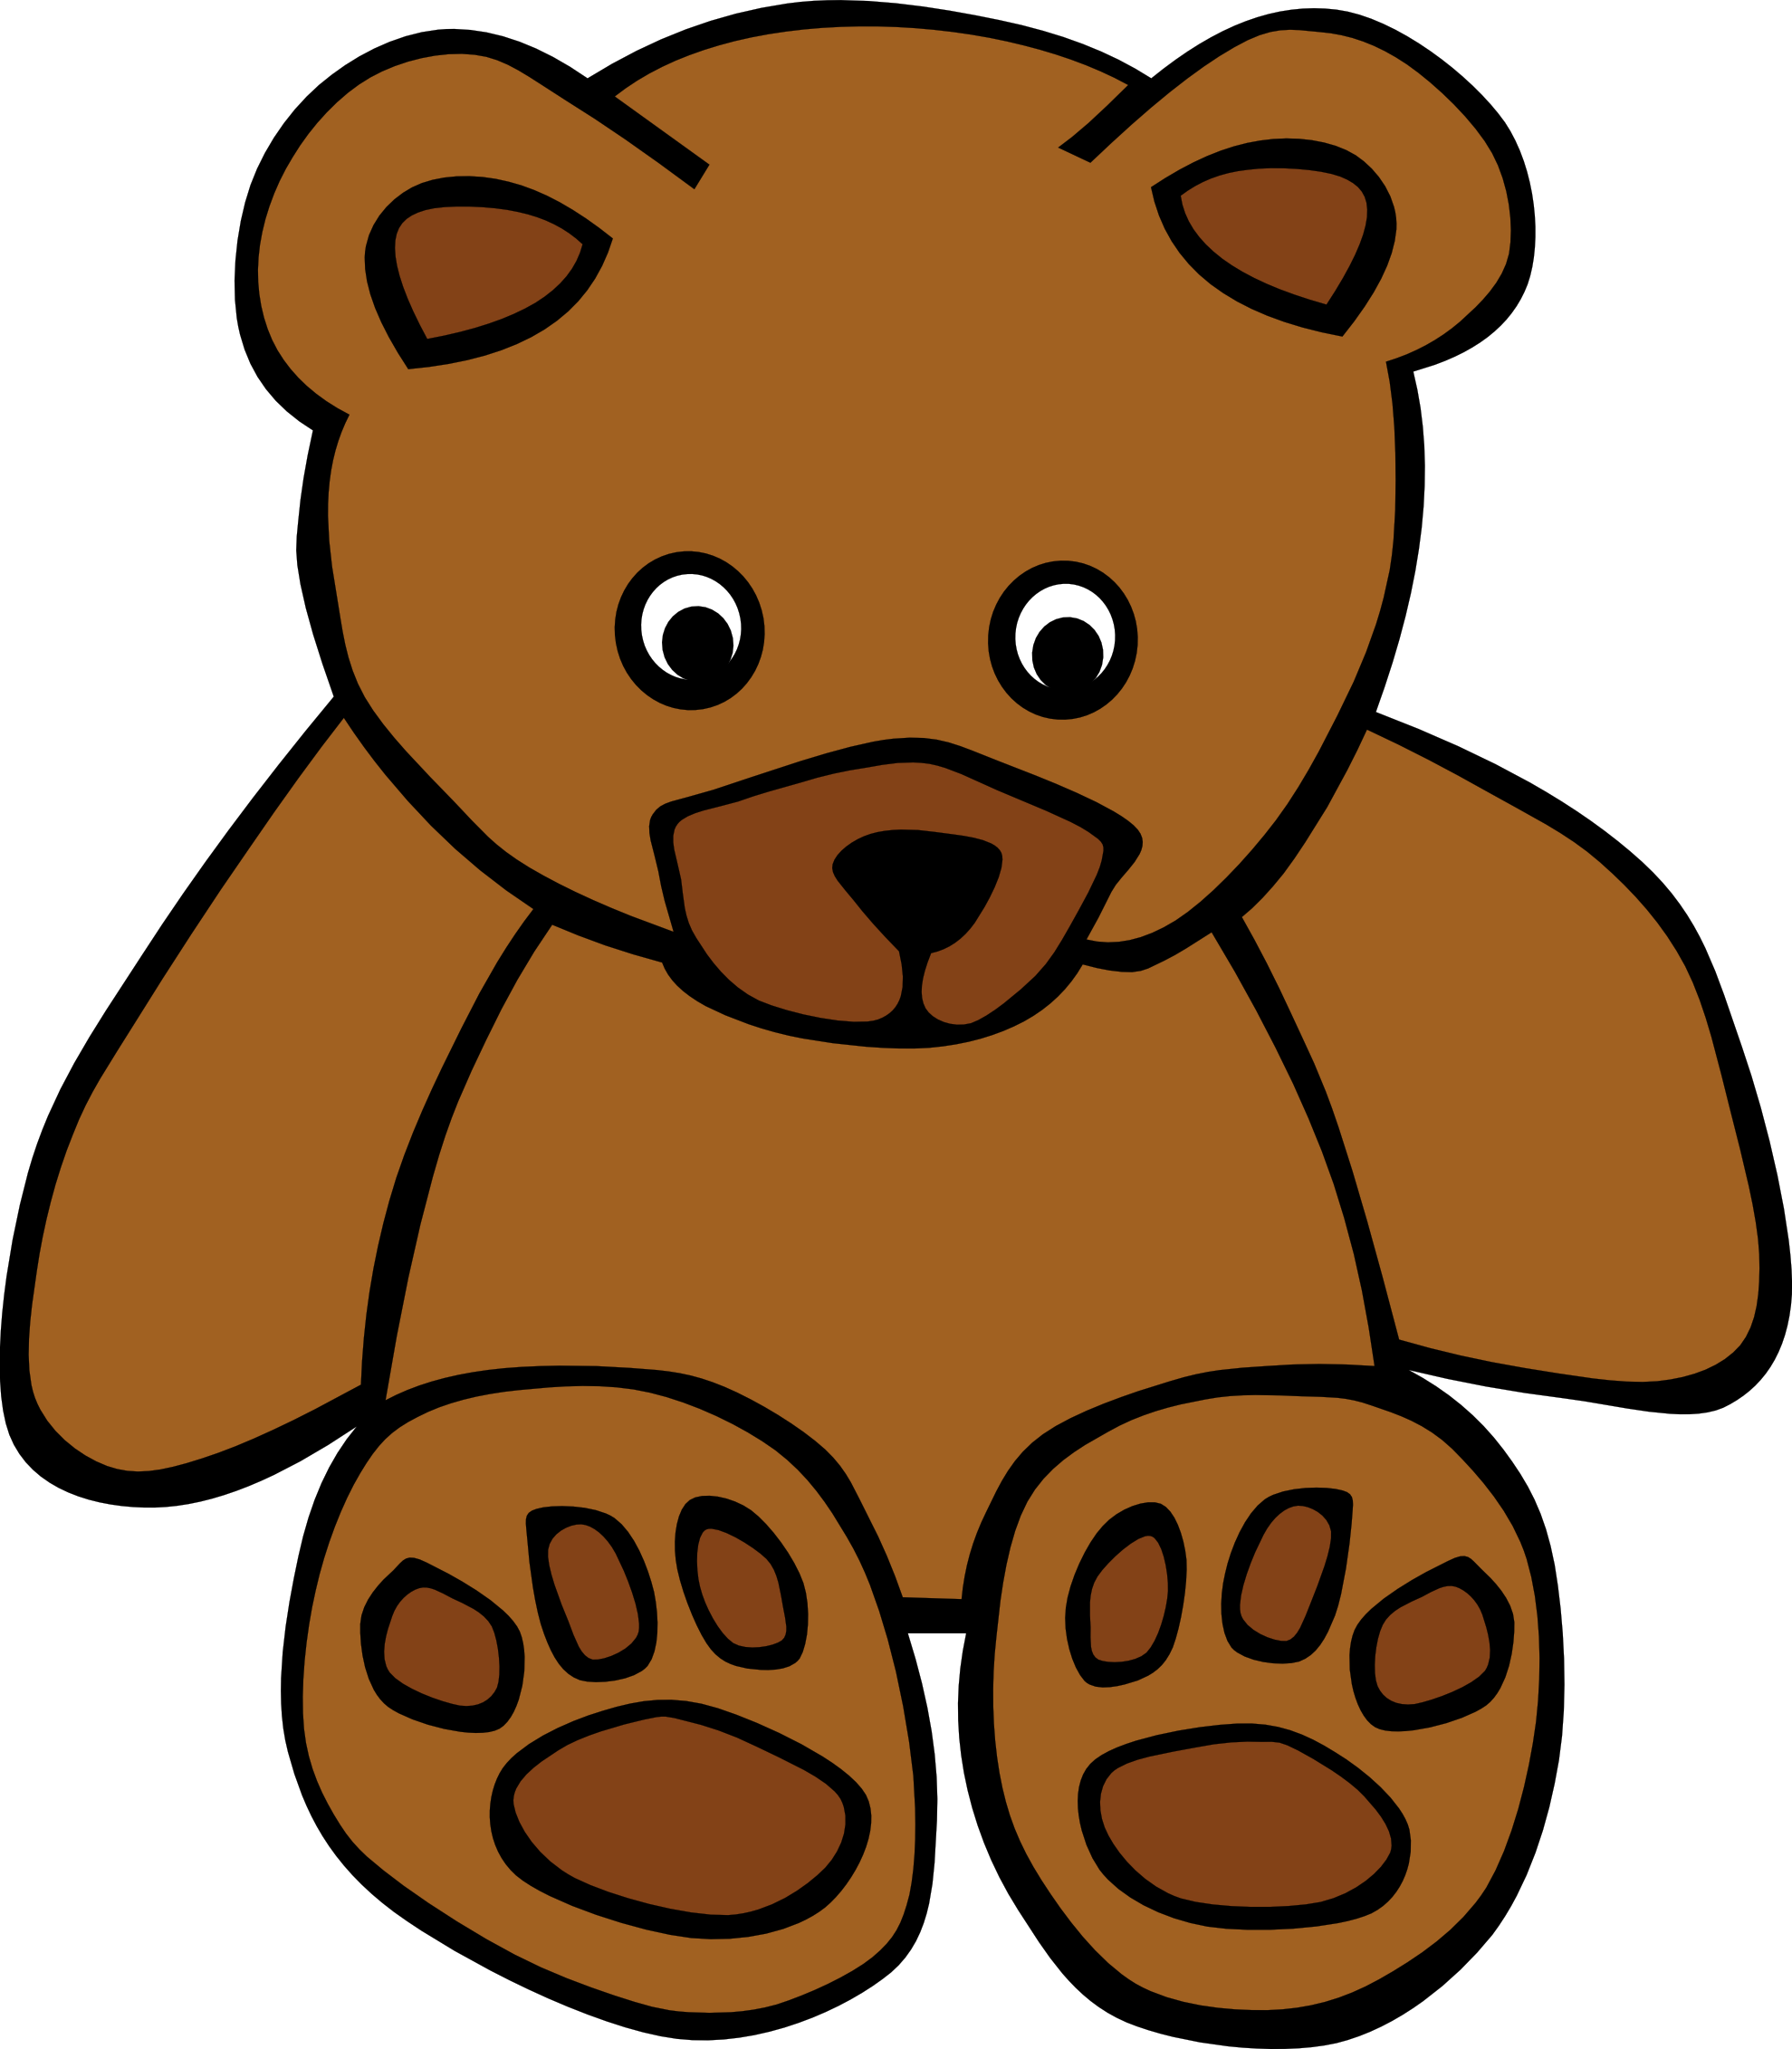 free Bears clipart. Teddy bear panda free